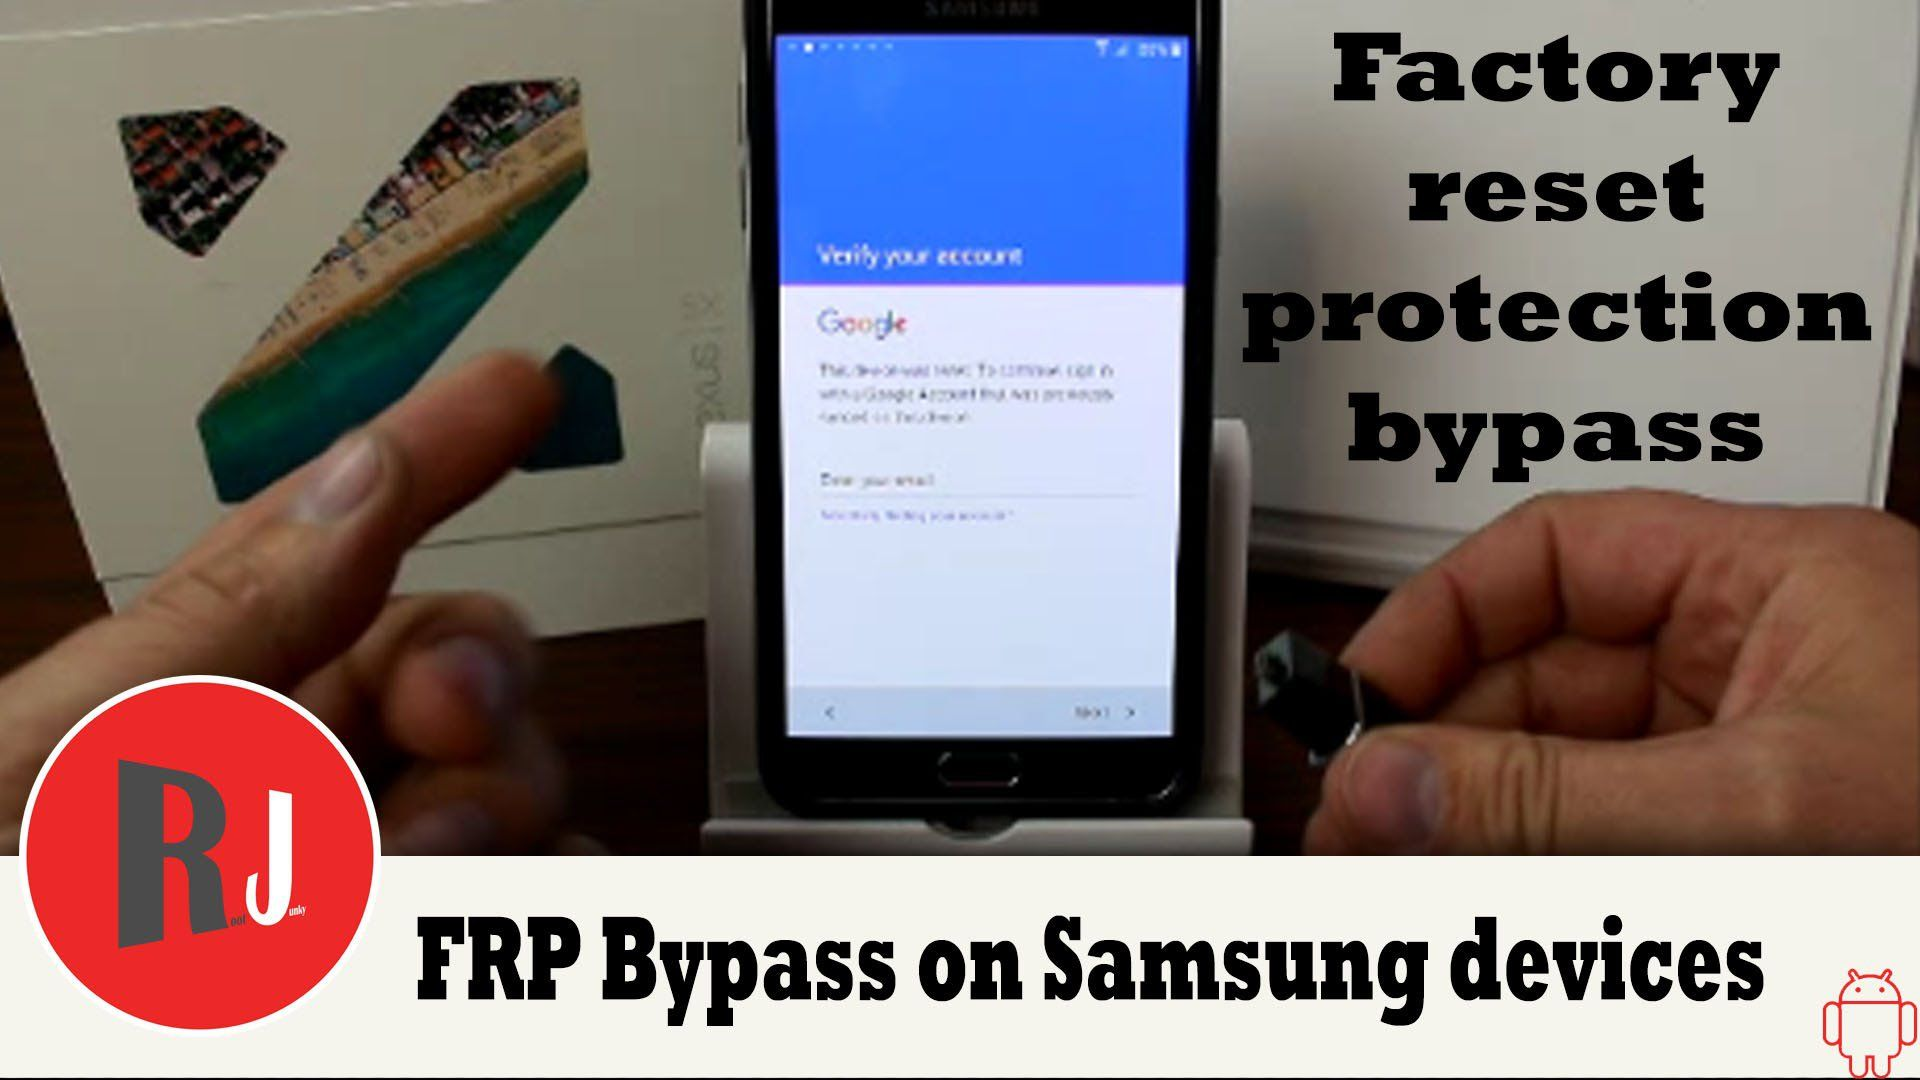 A Flaw In Samsung Phones Allows Users To Bypass Factory Reset